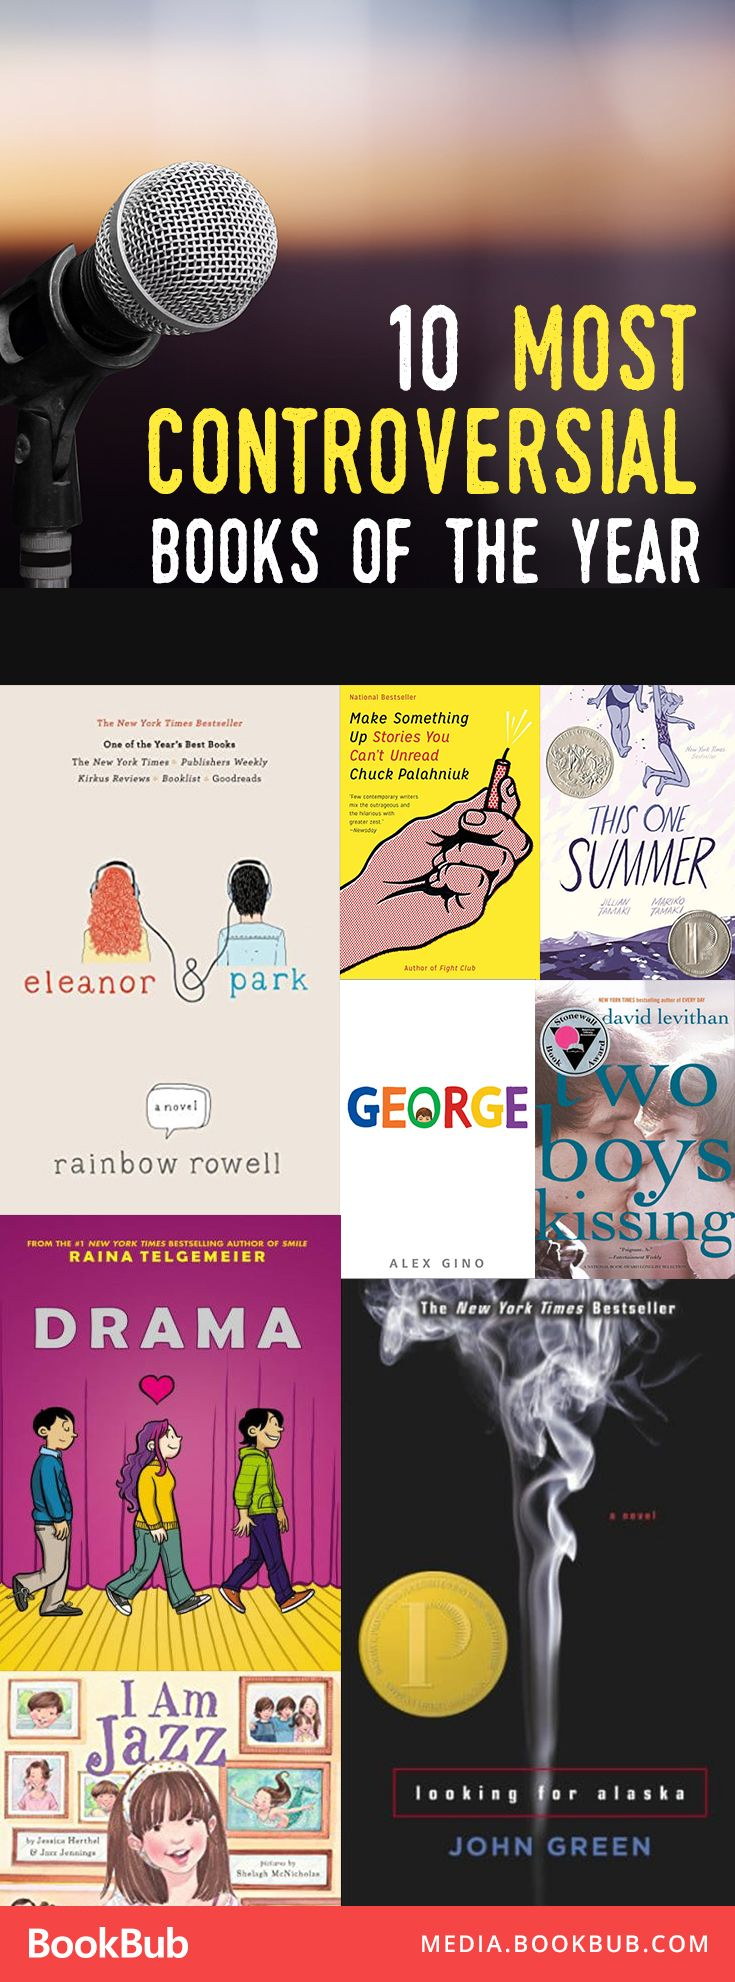 10 of the most controversial books of the year, including popular books for teens and young adults.